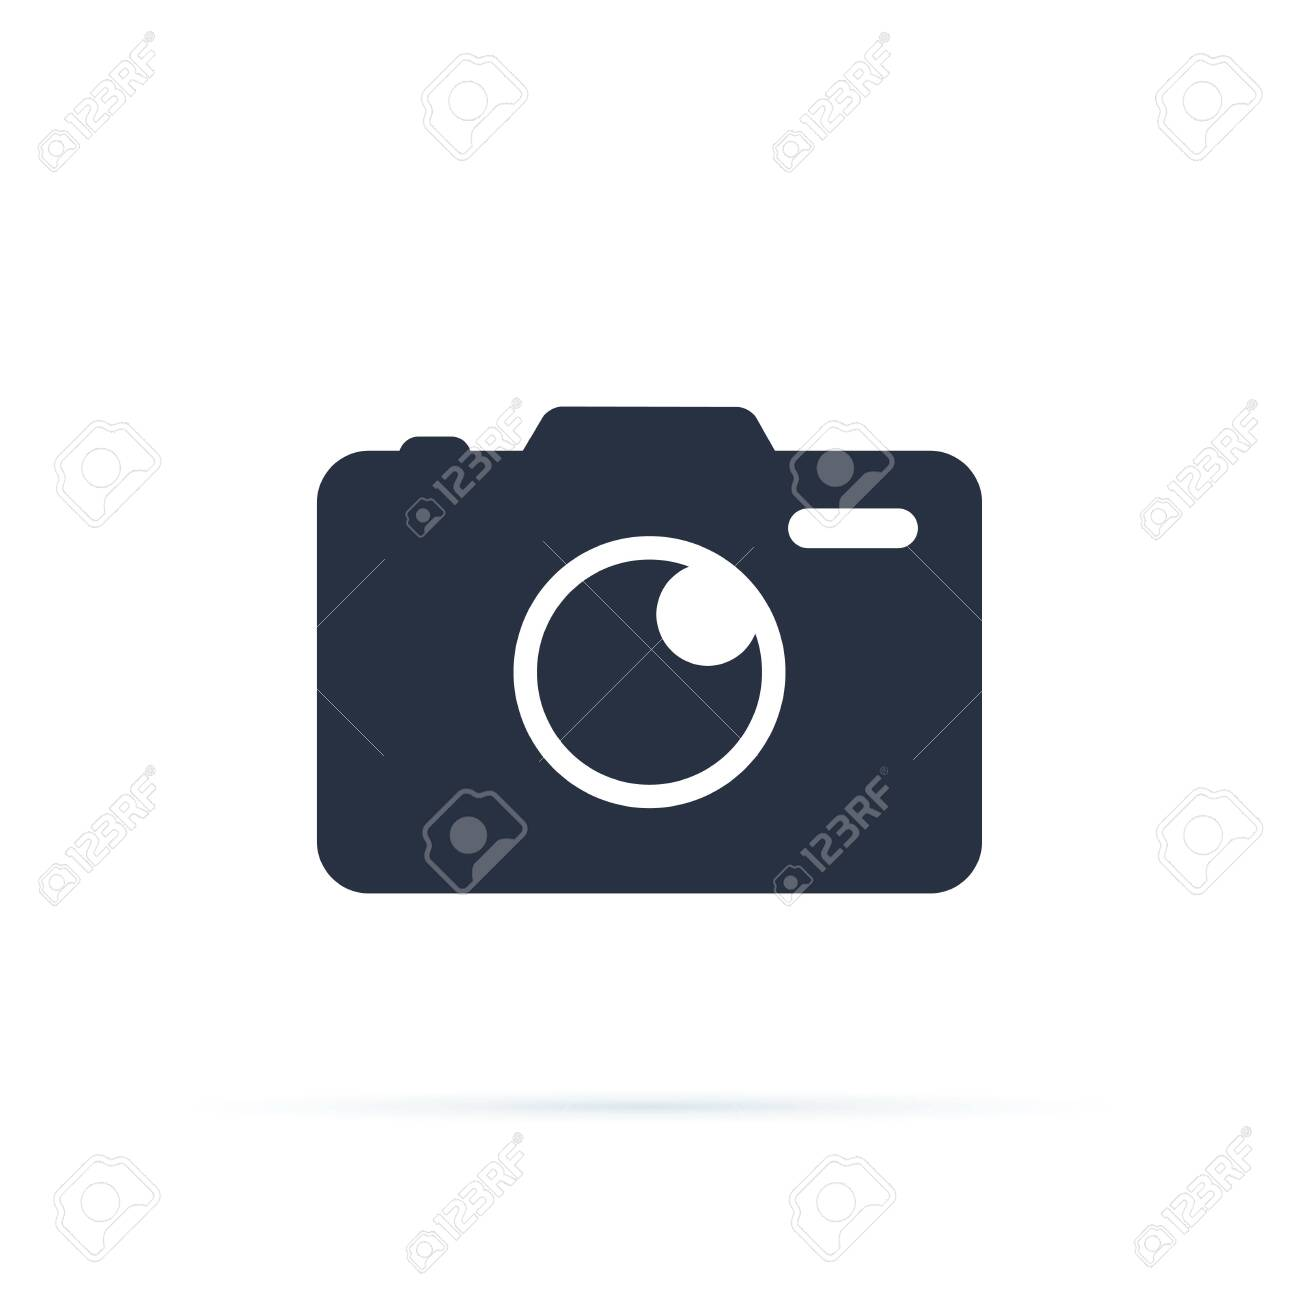 Photo camera vector icon. Camera icon, flat photocamera vector isolated. Modern simple snapshot photography sign. - 121663111